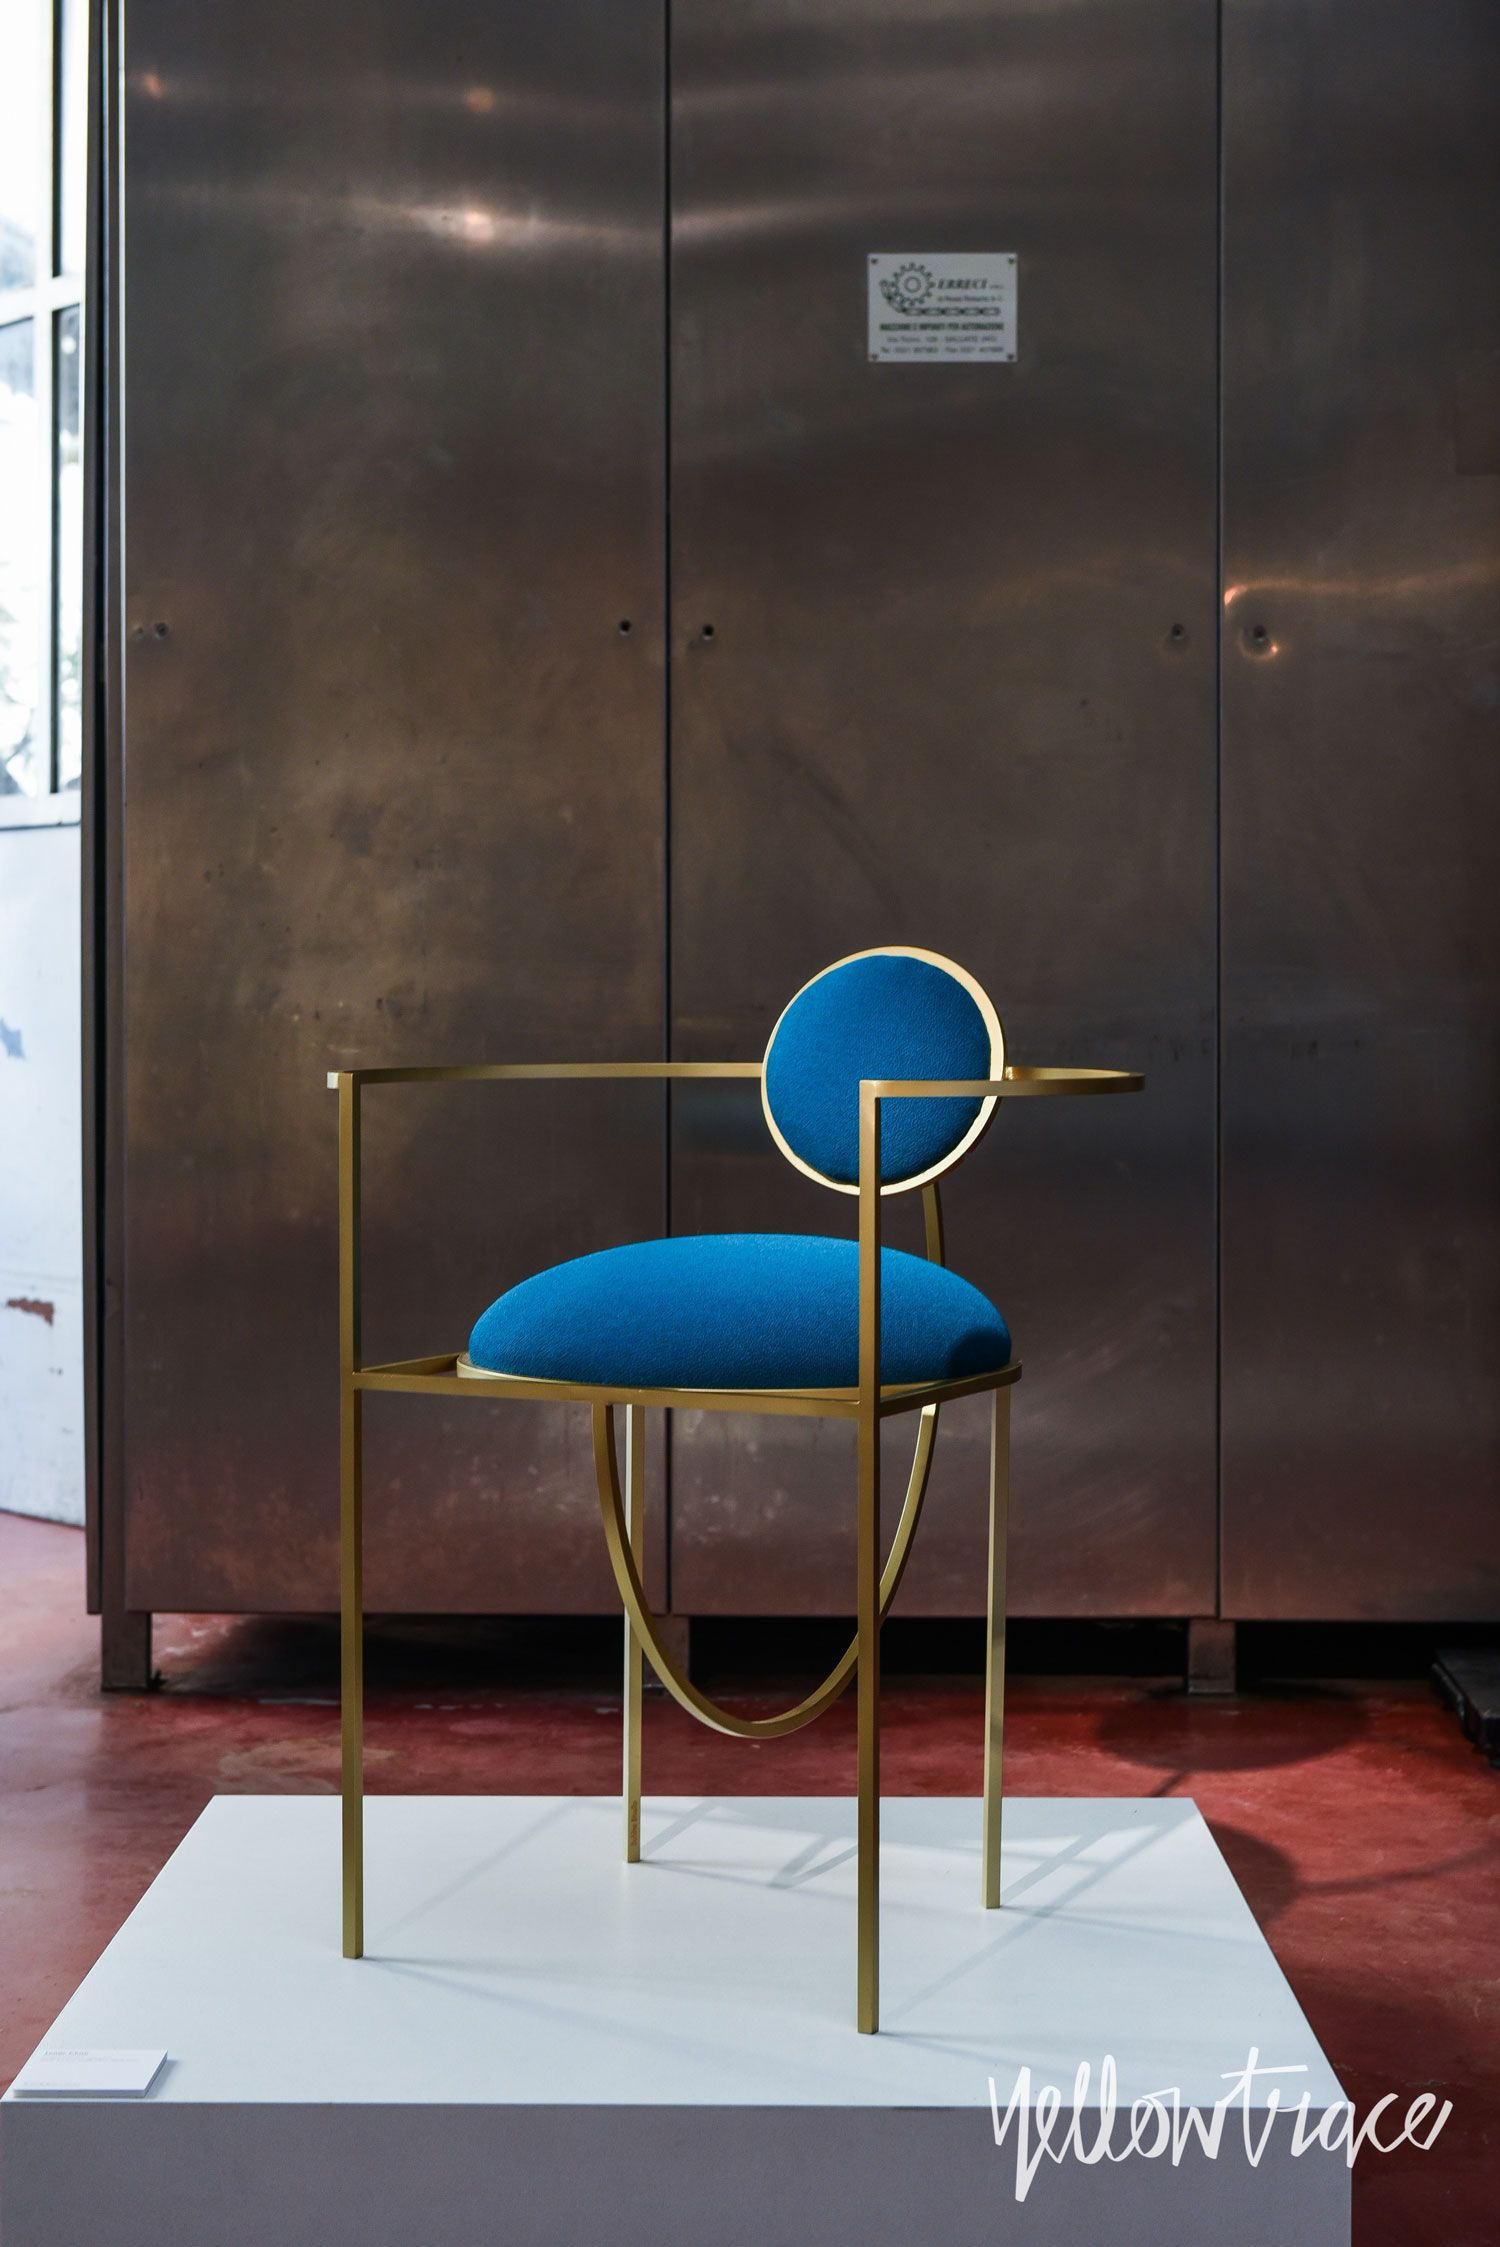 Milan Design Week  Highlights  Pinterest  Milan Smart design